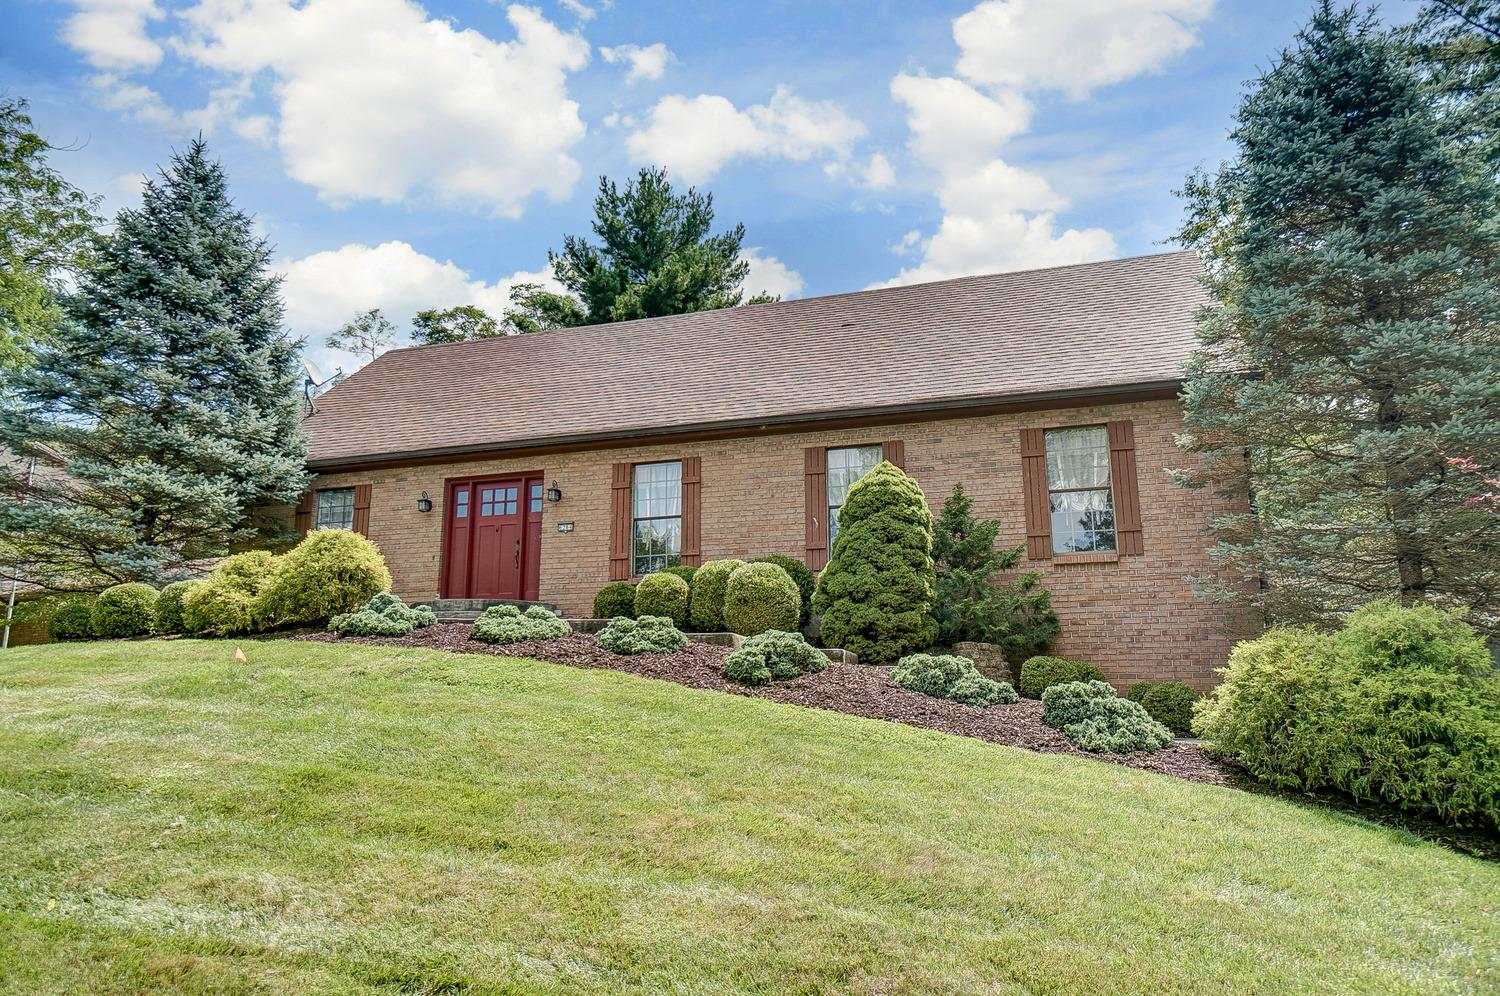 Photo 2 for 6264 Twinwillow Ln White Oak, OH 45247